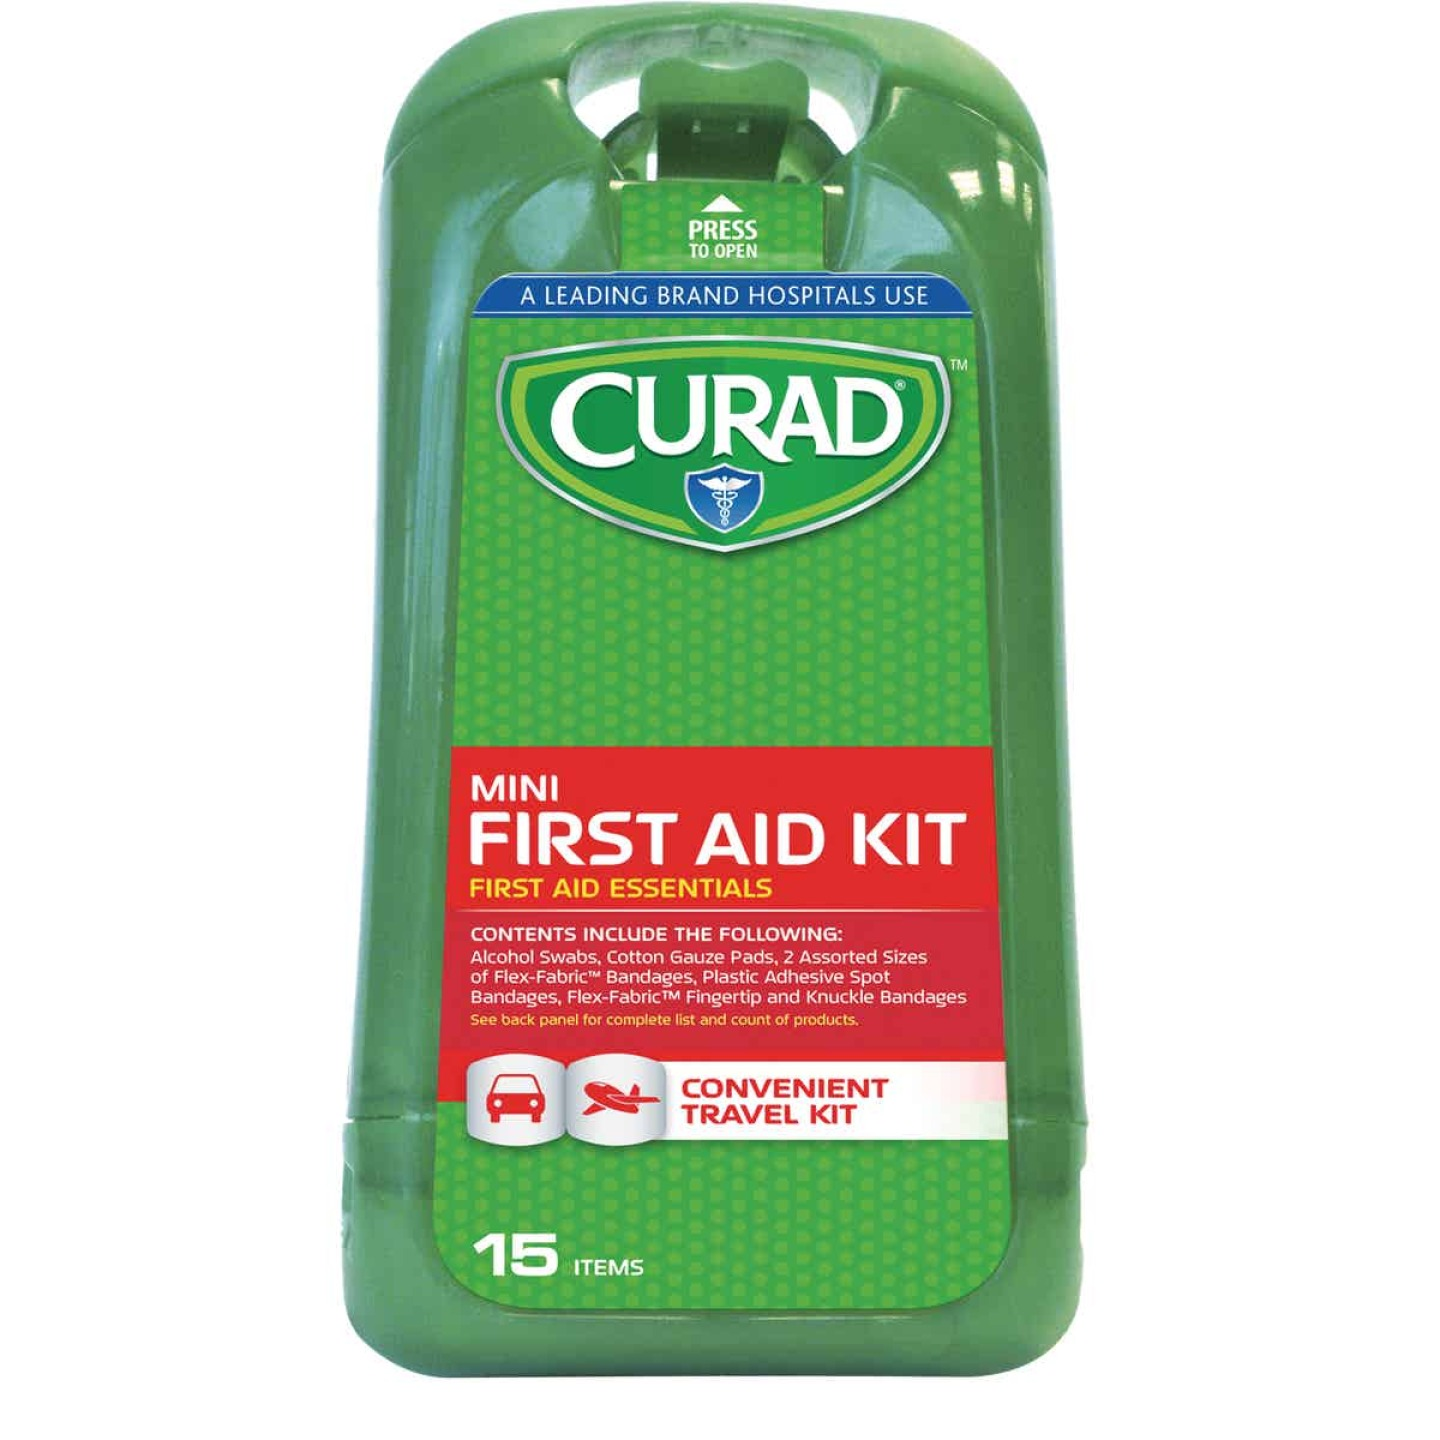 Curad Mini First Aid Kit (15-Piece) Image 1